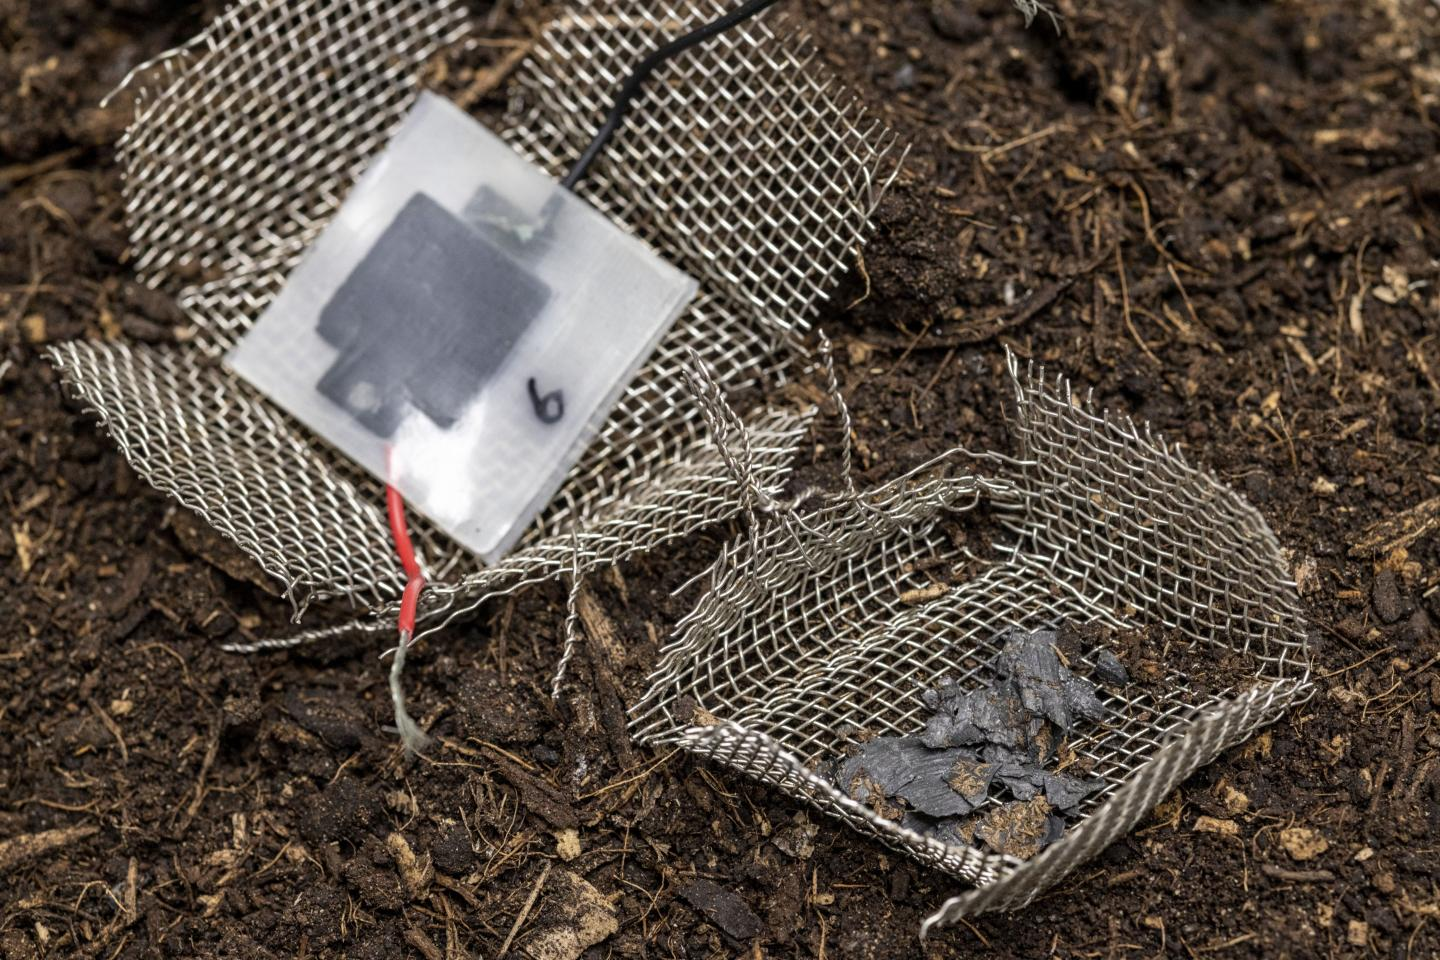 After two months buried in the soil, the capacitor has disintegrated, leaving only a few visible carbon particles. Image: Gian Vaitl/ Empa.